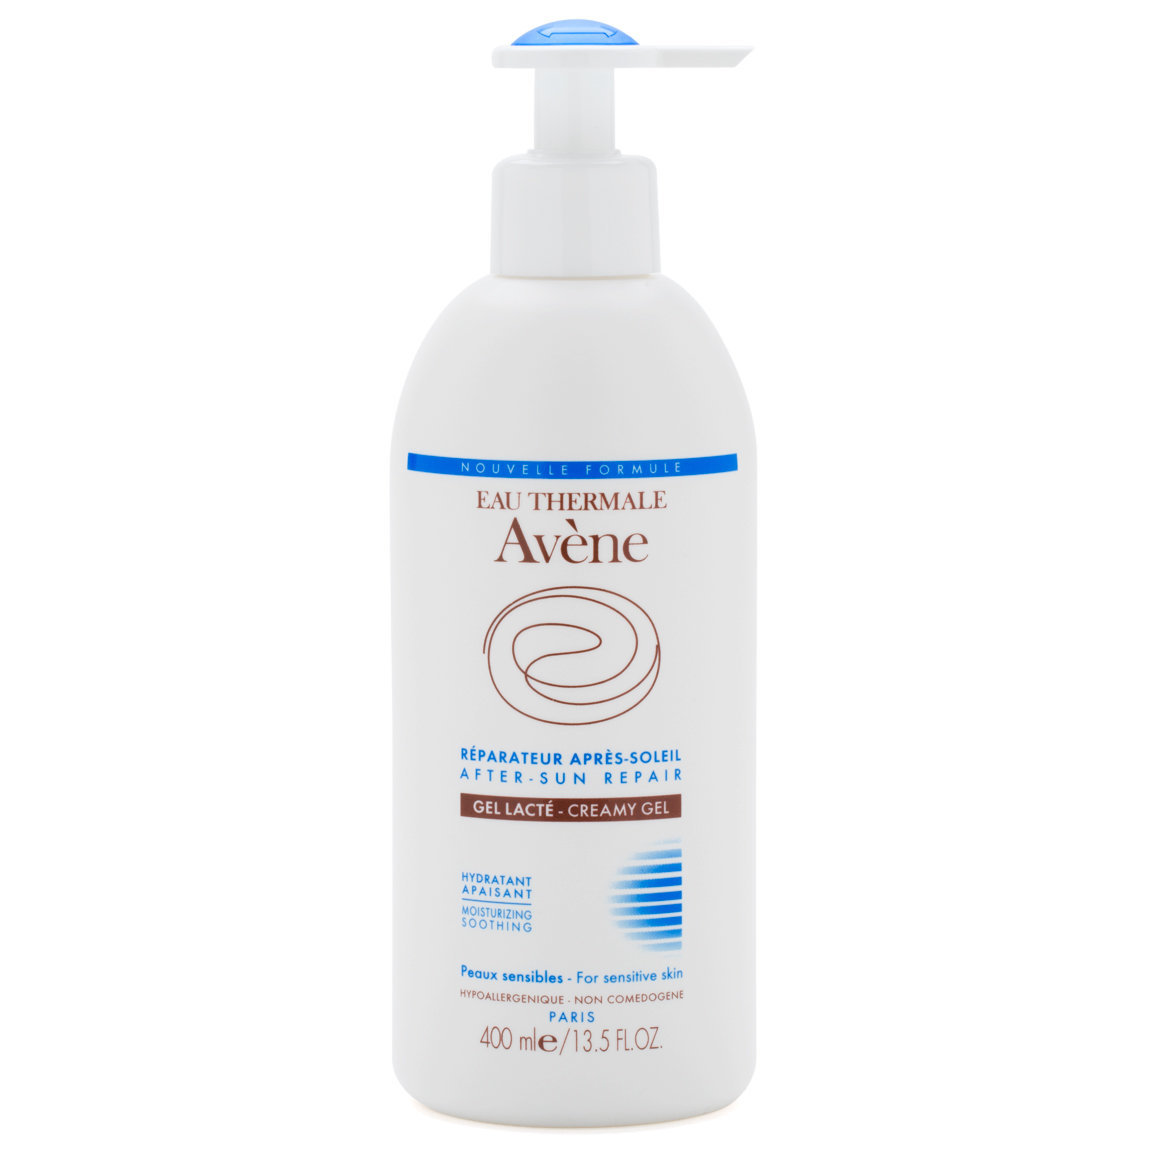 Eau Thermale Avène After-Sun Repair Creamy Gel 400 ml product swatch.